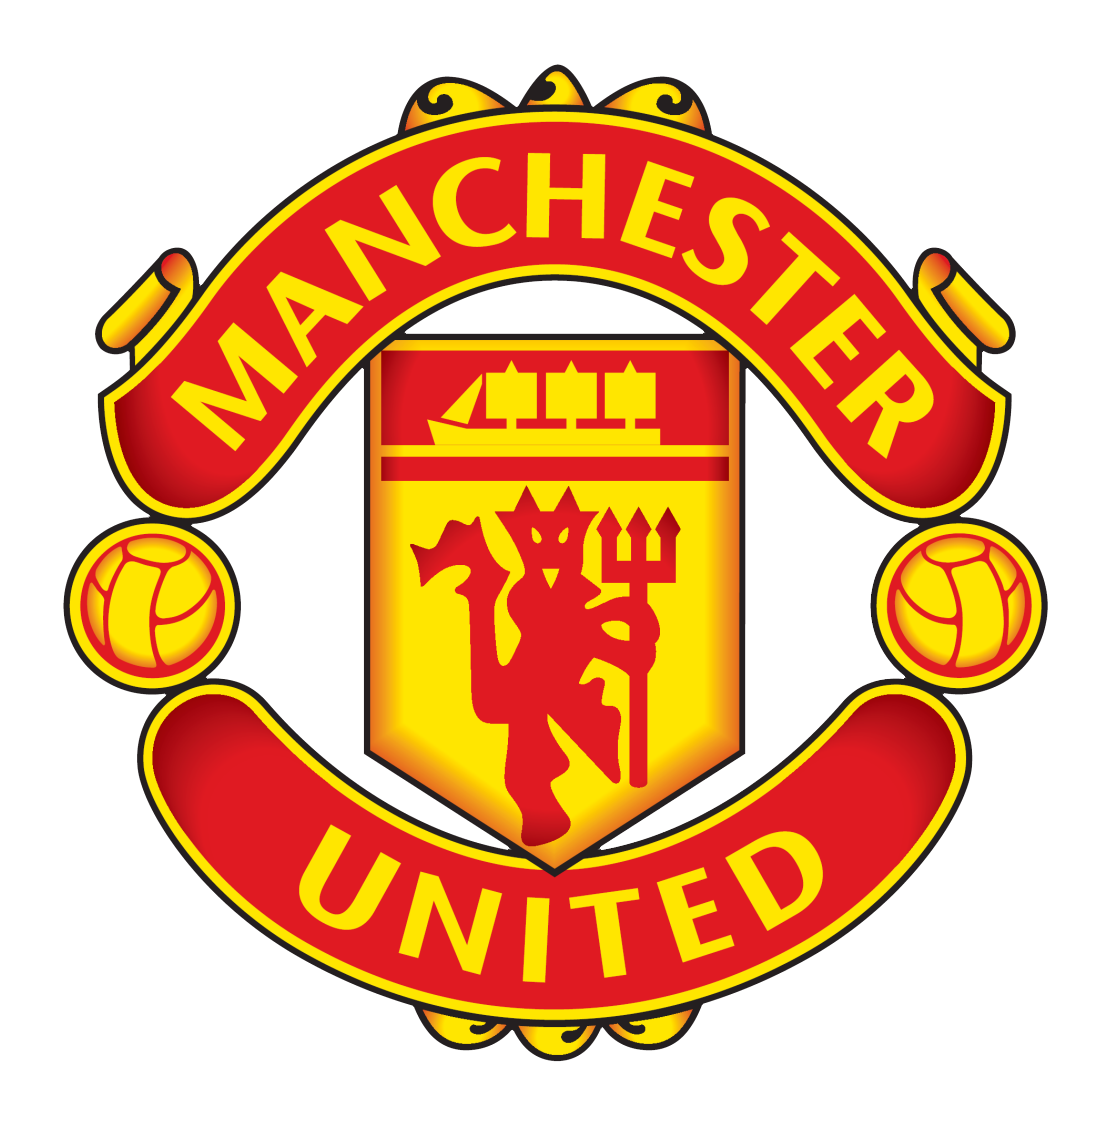 Manchester United Logo Png Png 1111 1126 Manchester United Logo Manchester United Football Manchester United Football Club